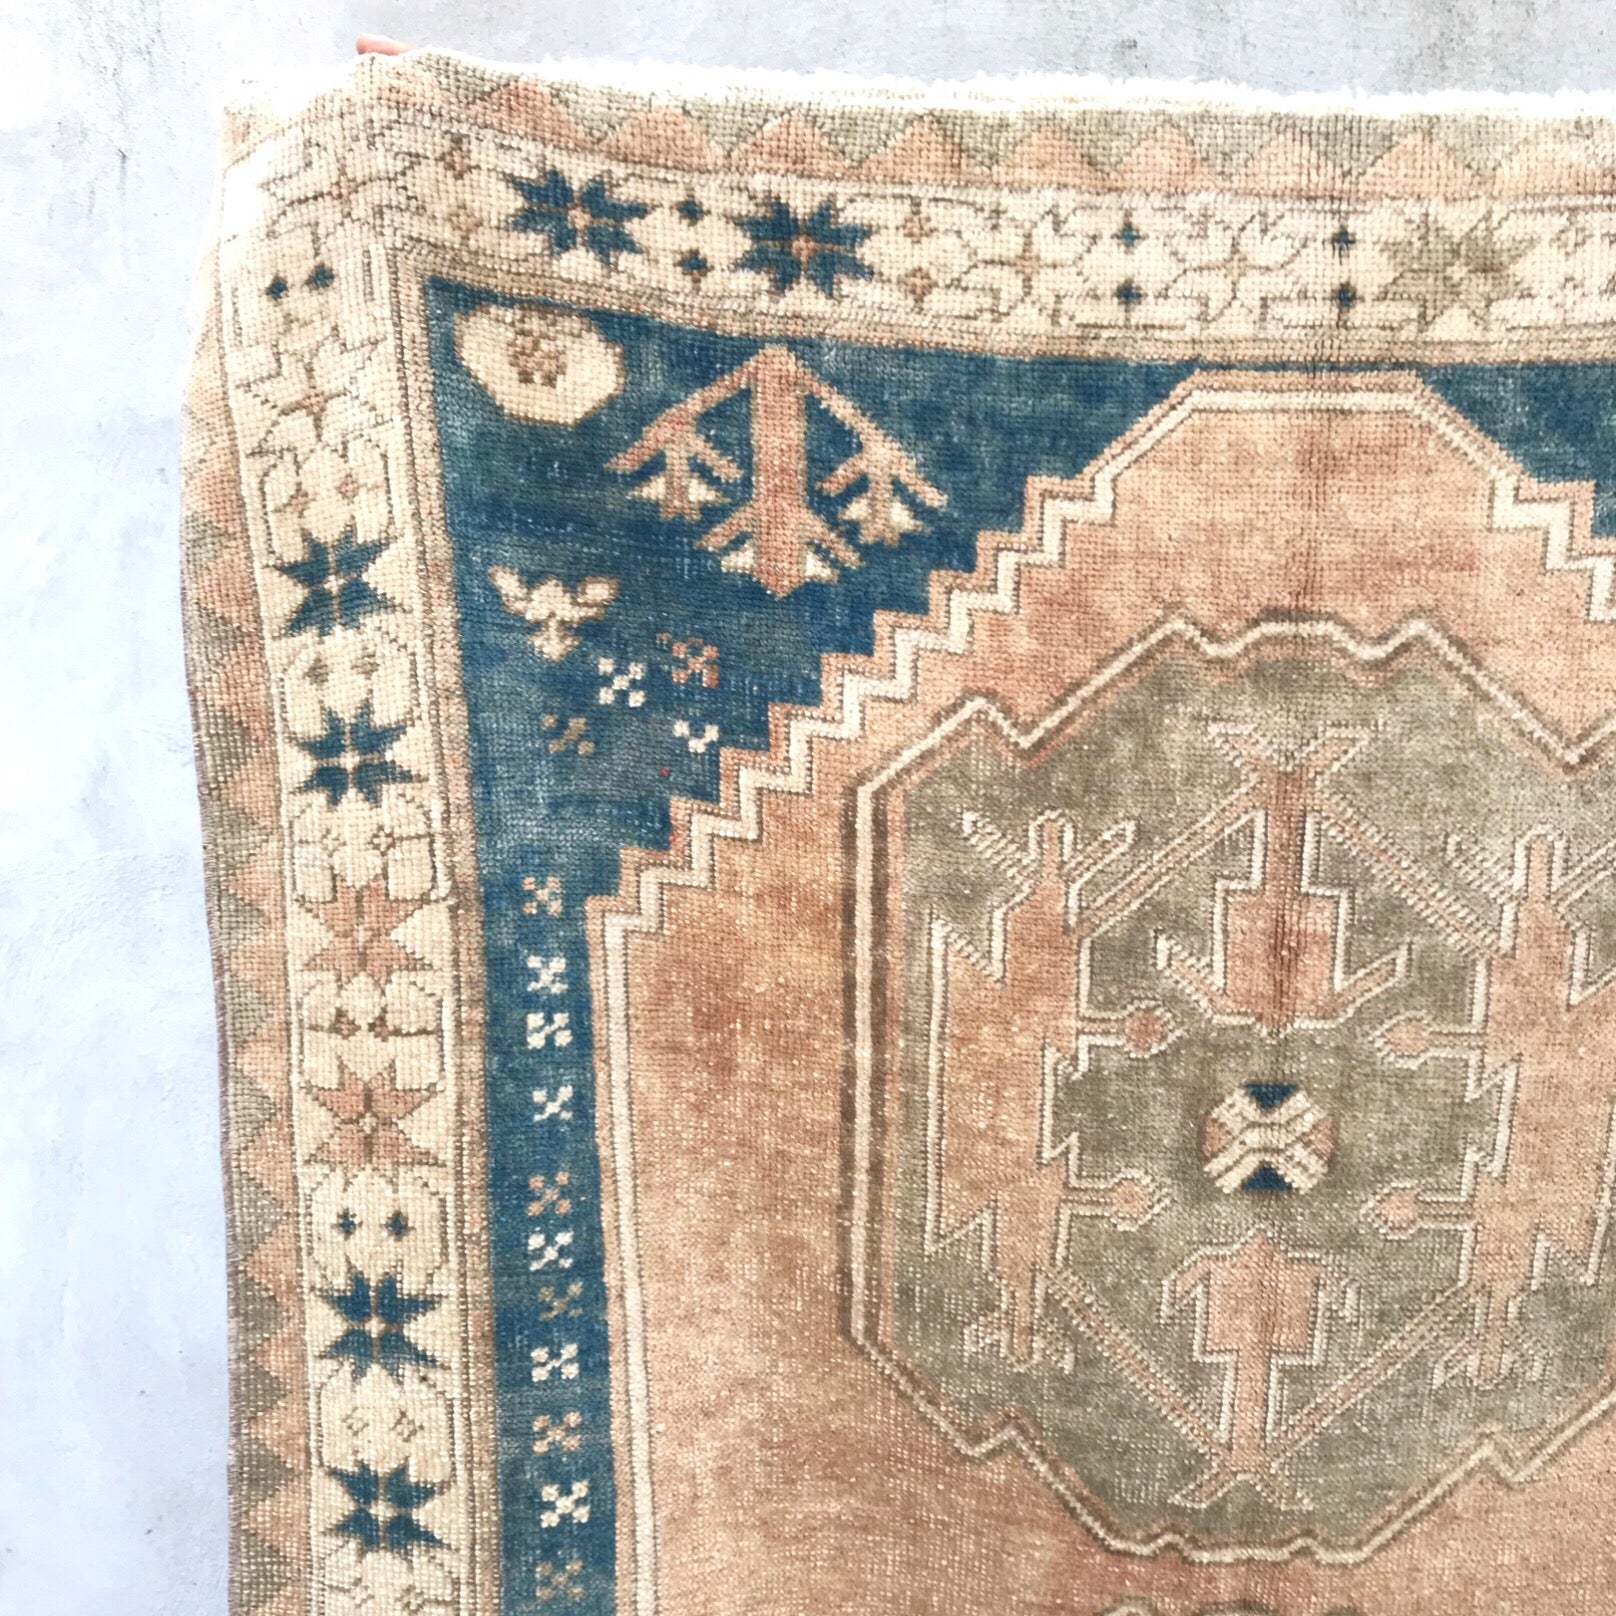 This Kars Yörük vintage Turkish rug has beautiful blush, blue, and neutrals in a tribal design. 4'1x6'8